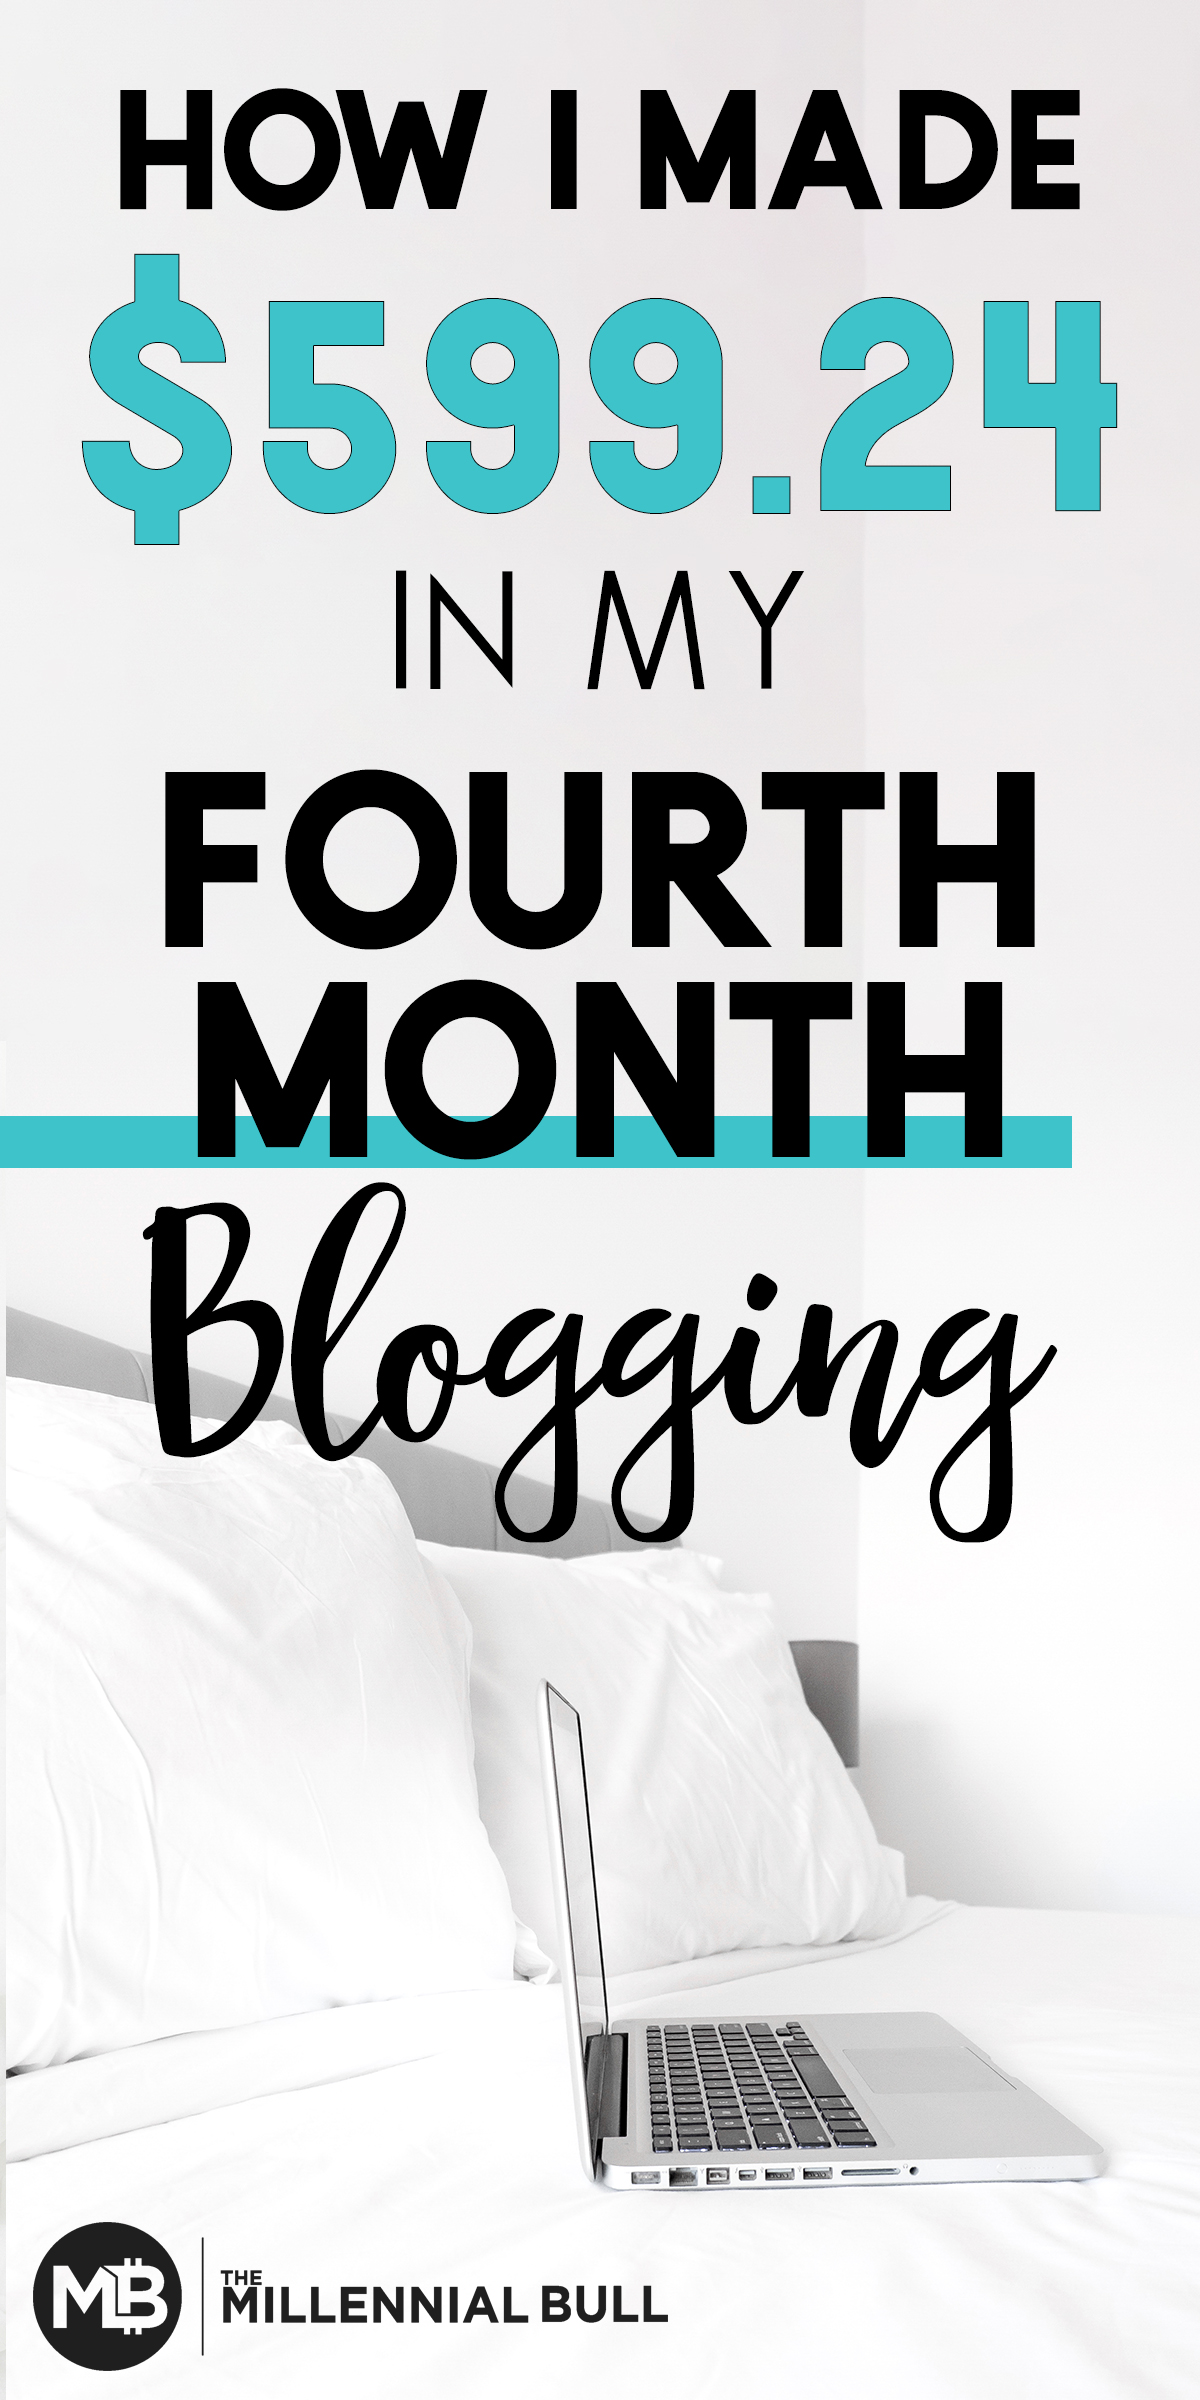 How I made $599.24 in my fourth month blogging; learn how we increased our blog income by 50% and what money making strategies worked the best for us in March 2019. #makemoneyblogging #blogincomereport #incomereport